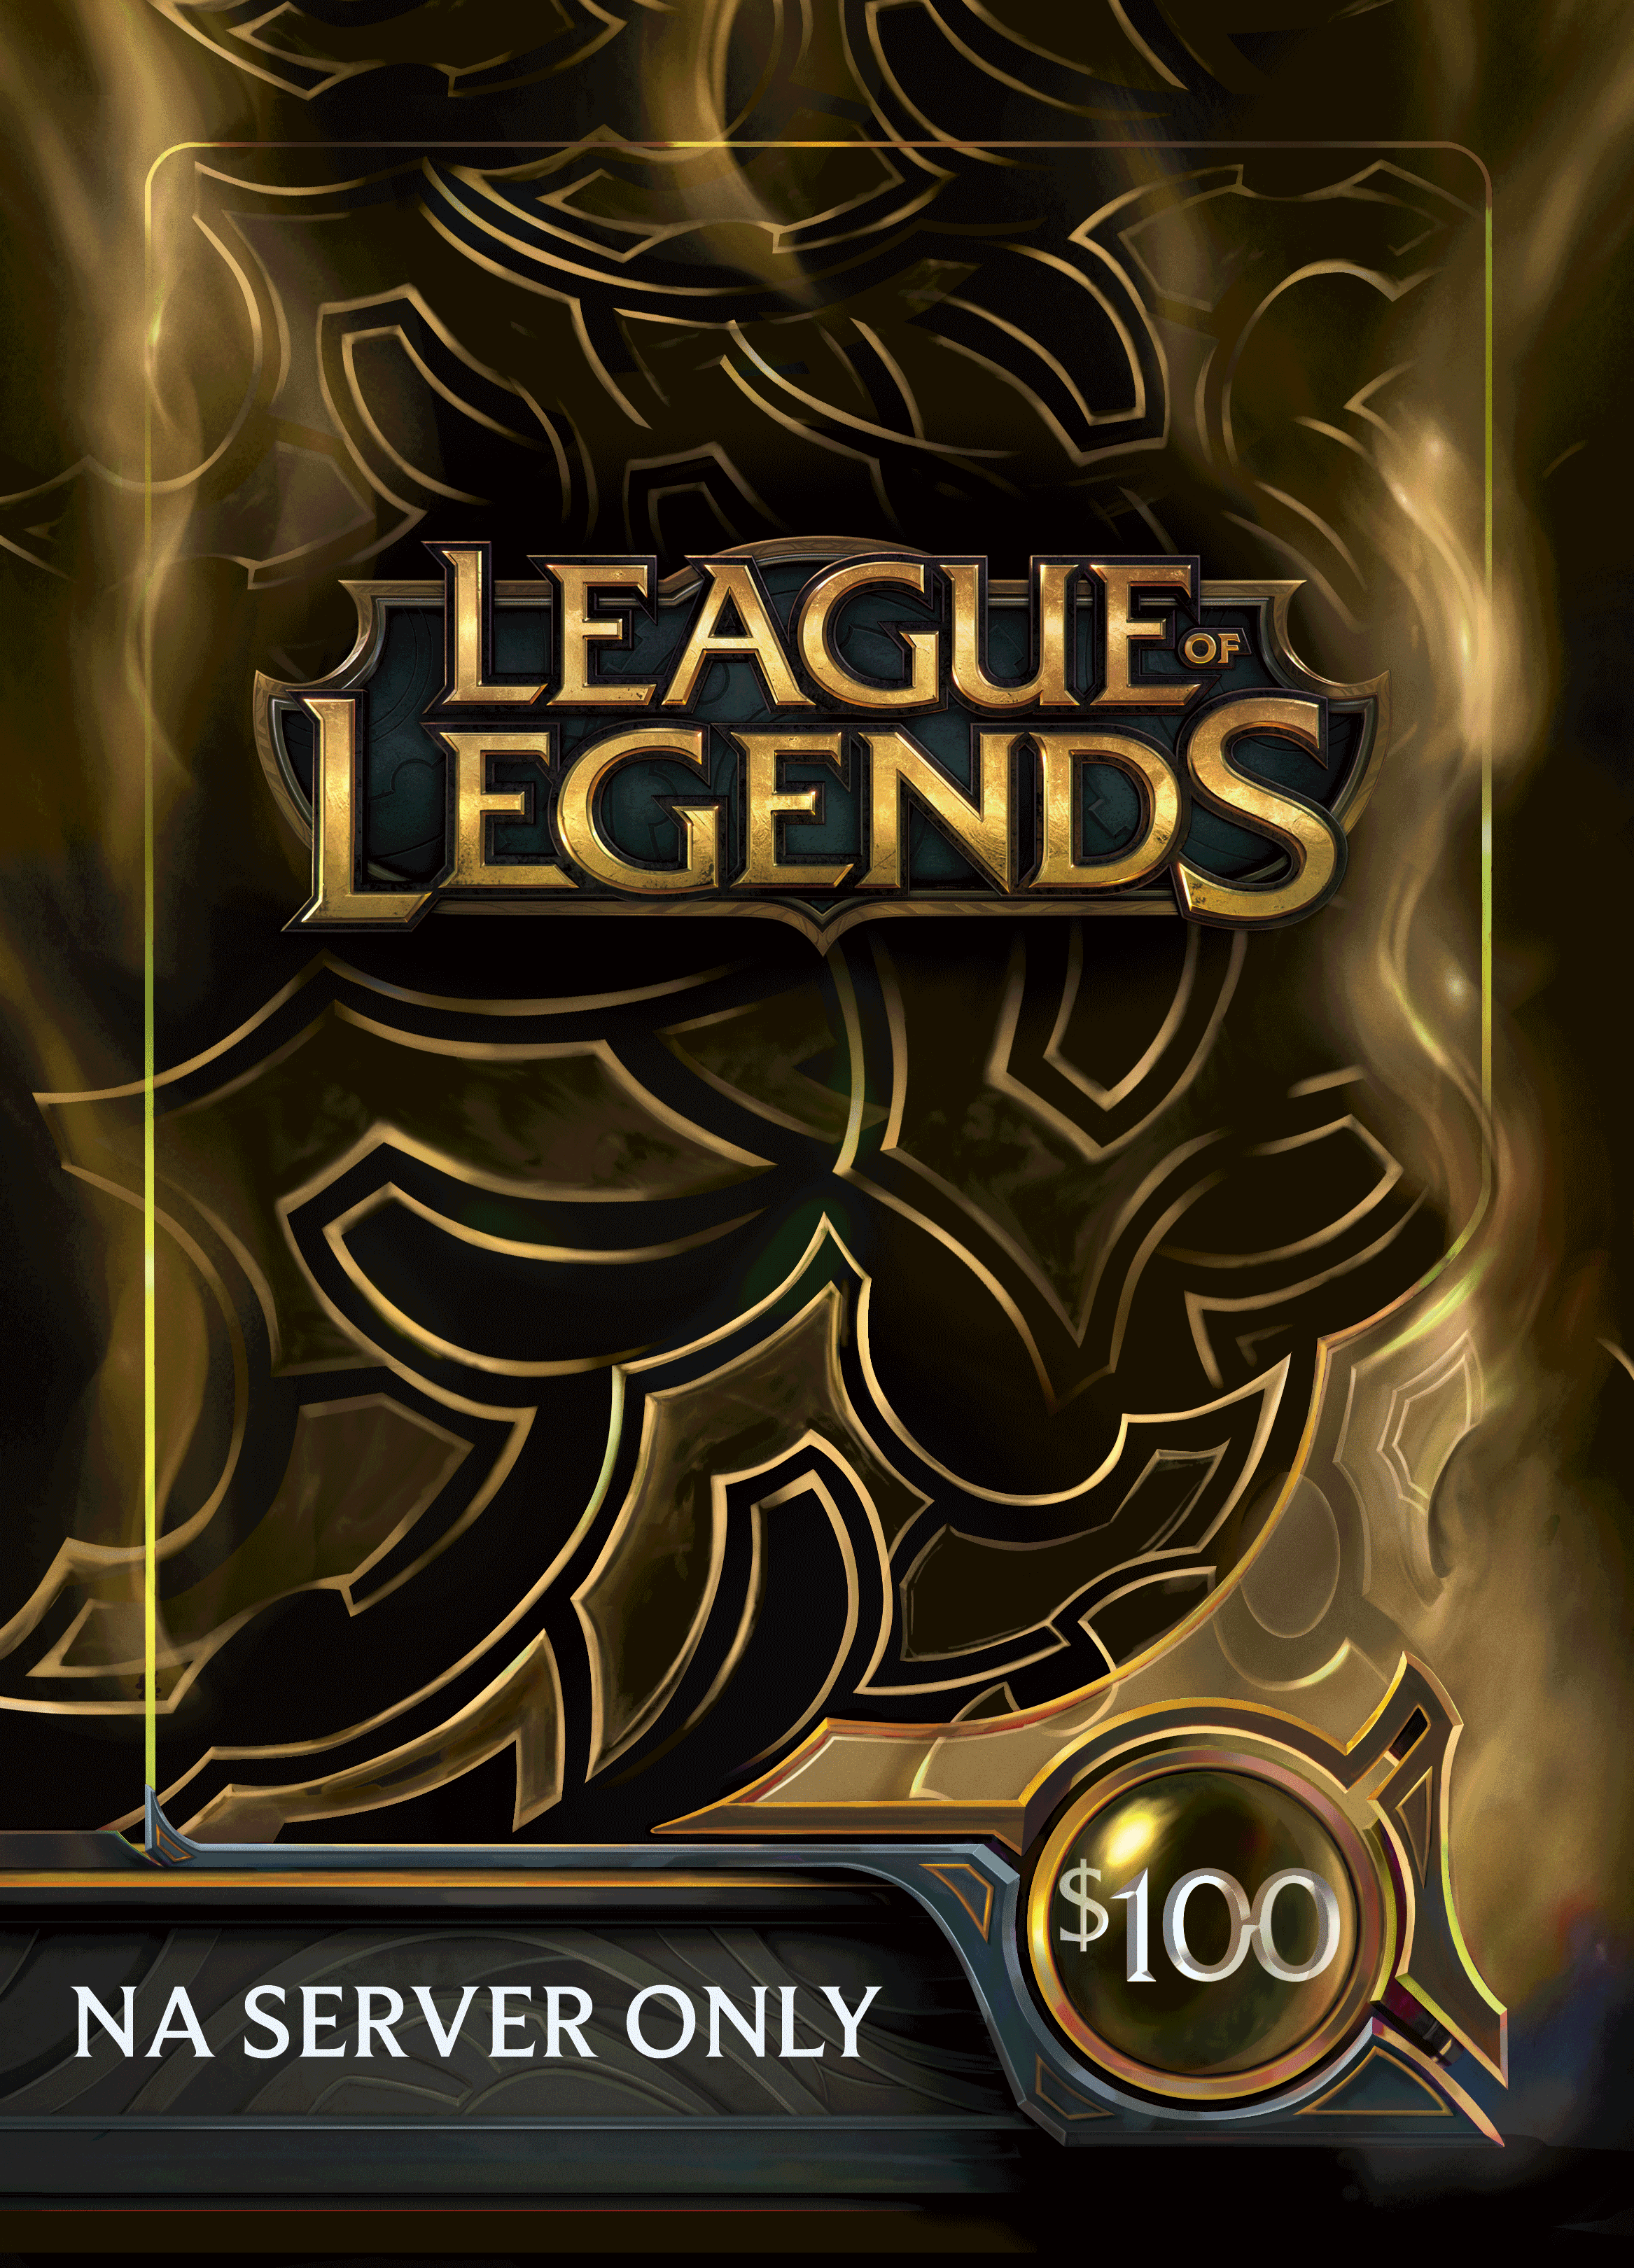 League of Legends $100 Gift Card - 15000 Riot Points - NA Server ...